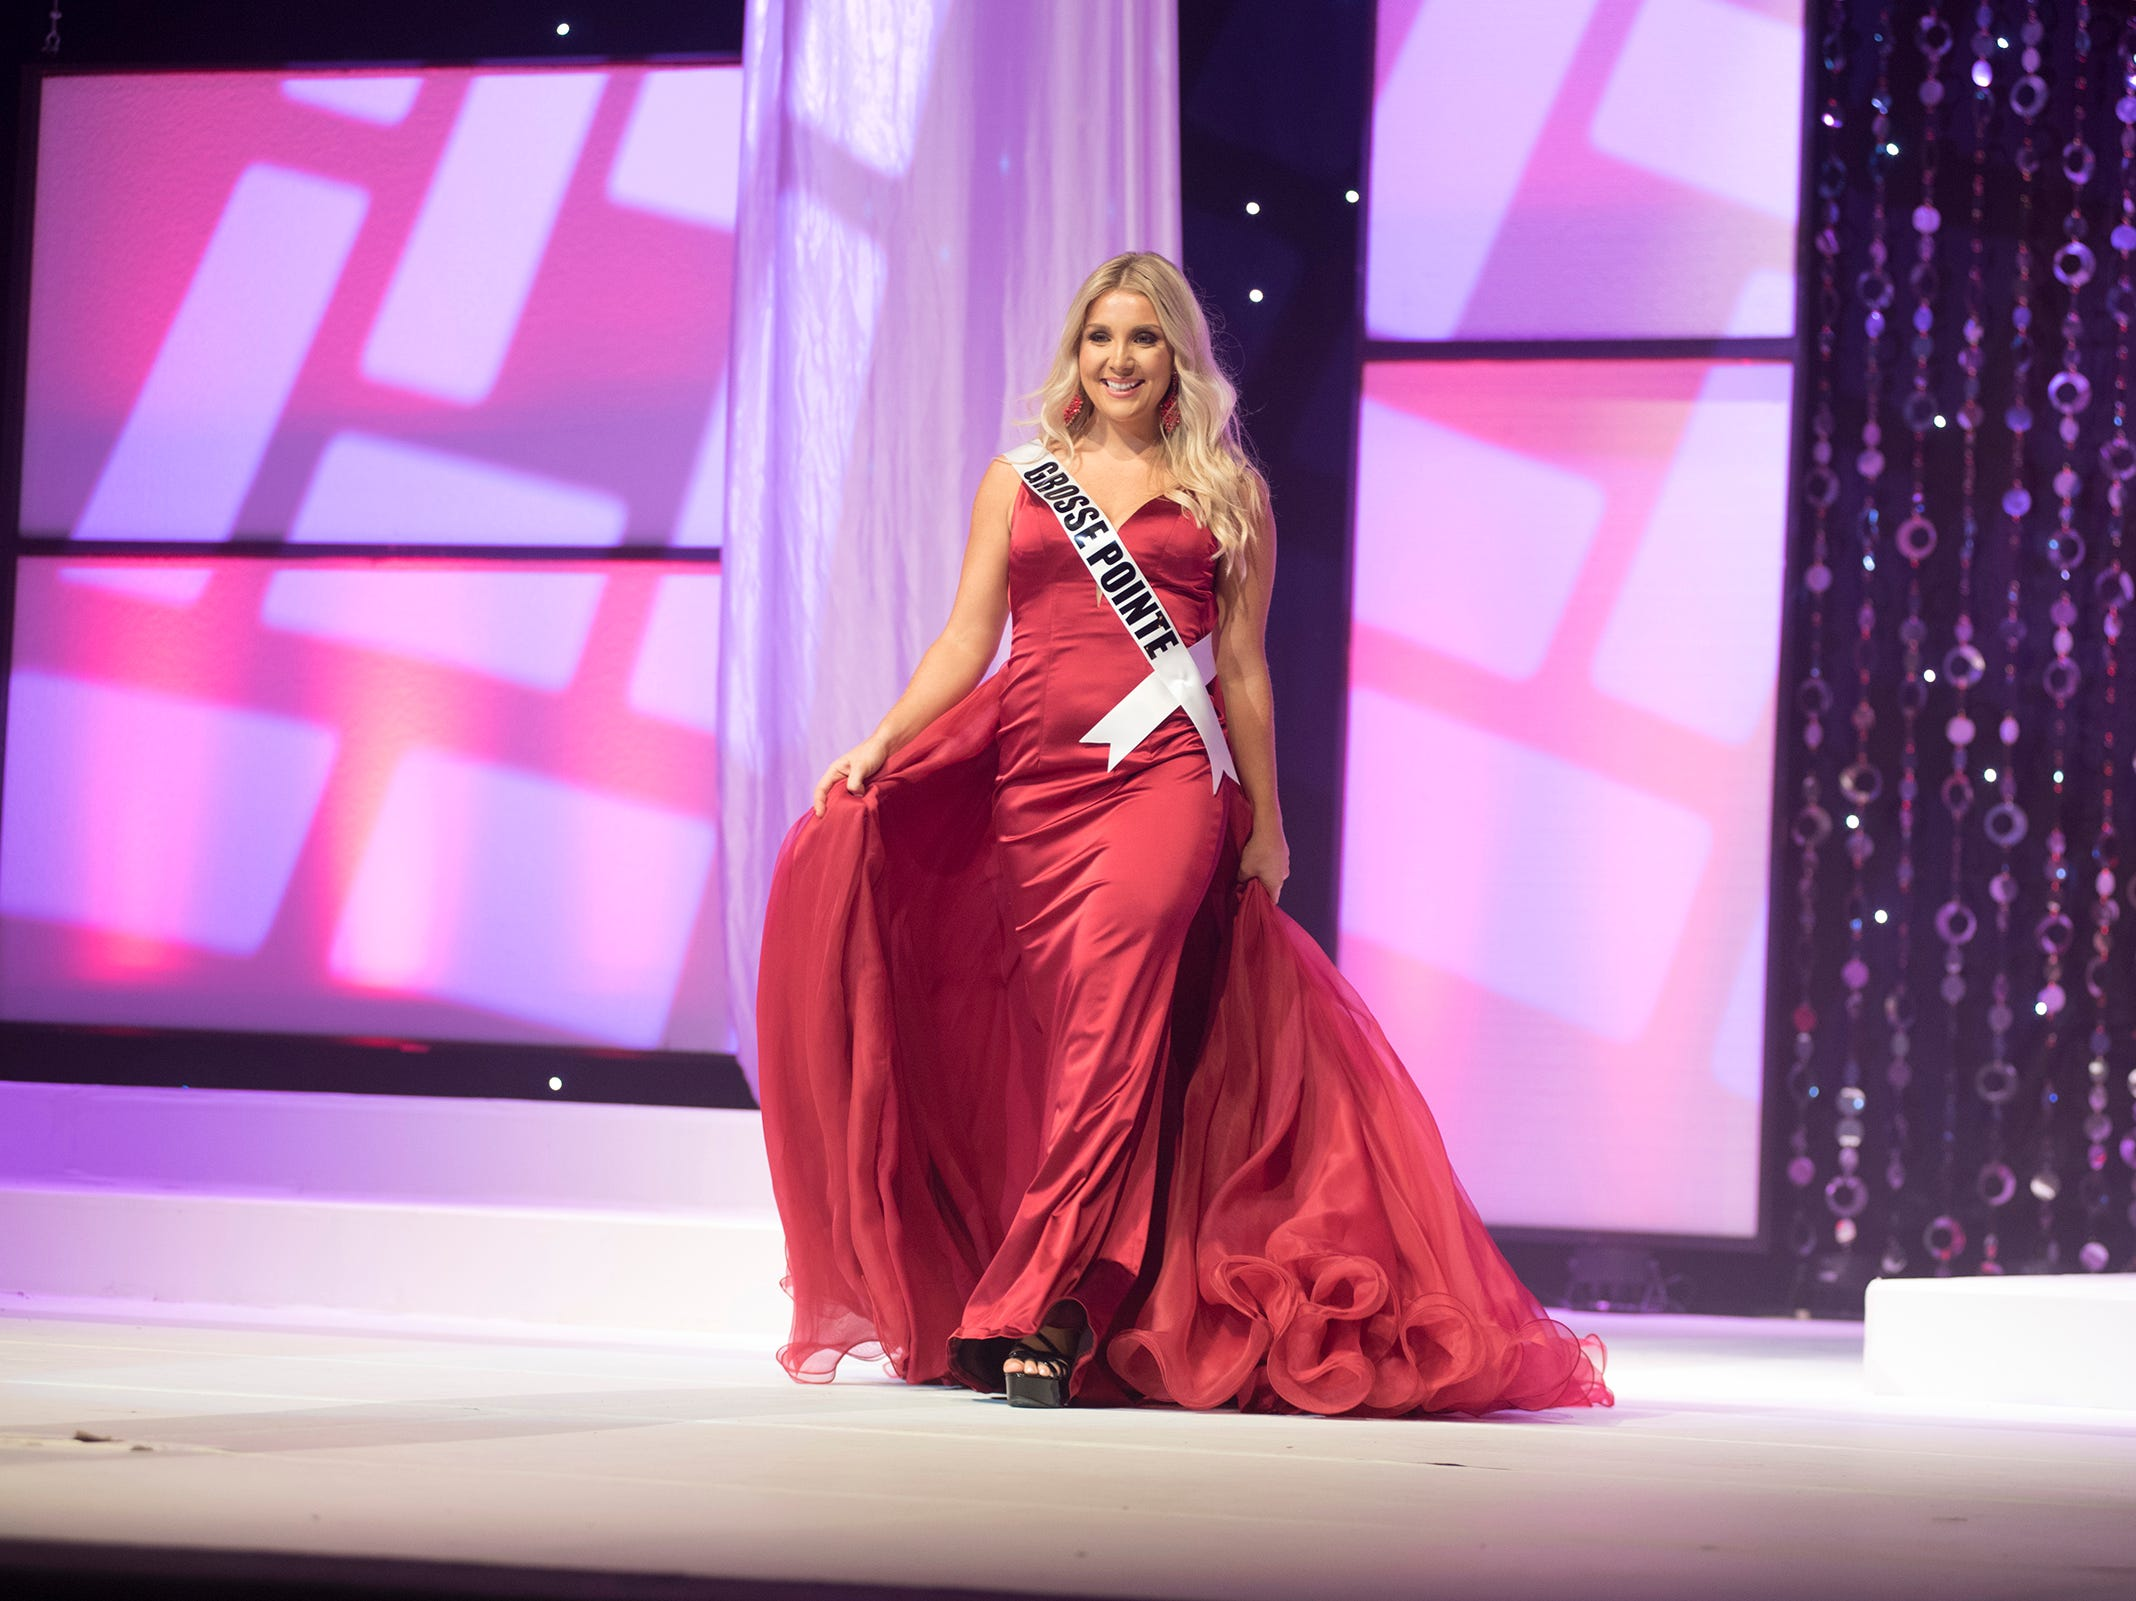 Miss Grosse Pointe Hailey Urbach competes in formal wear during the semifinal round of Miss Michigan USA Saturday, Sept. 22, 2018 at McMorran Theater.